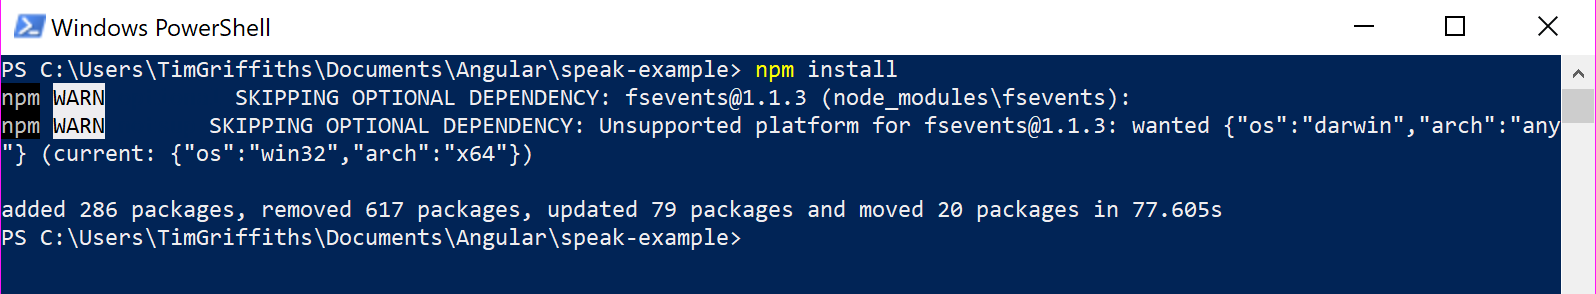 1 - Install NPM Packages